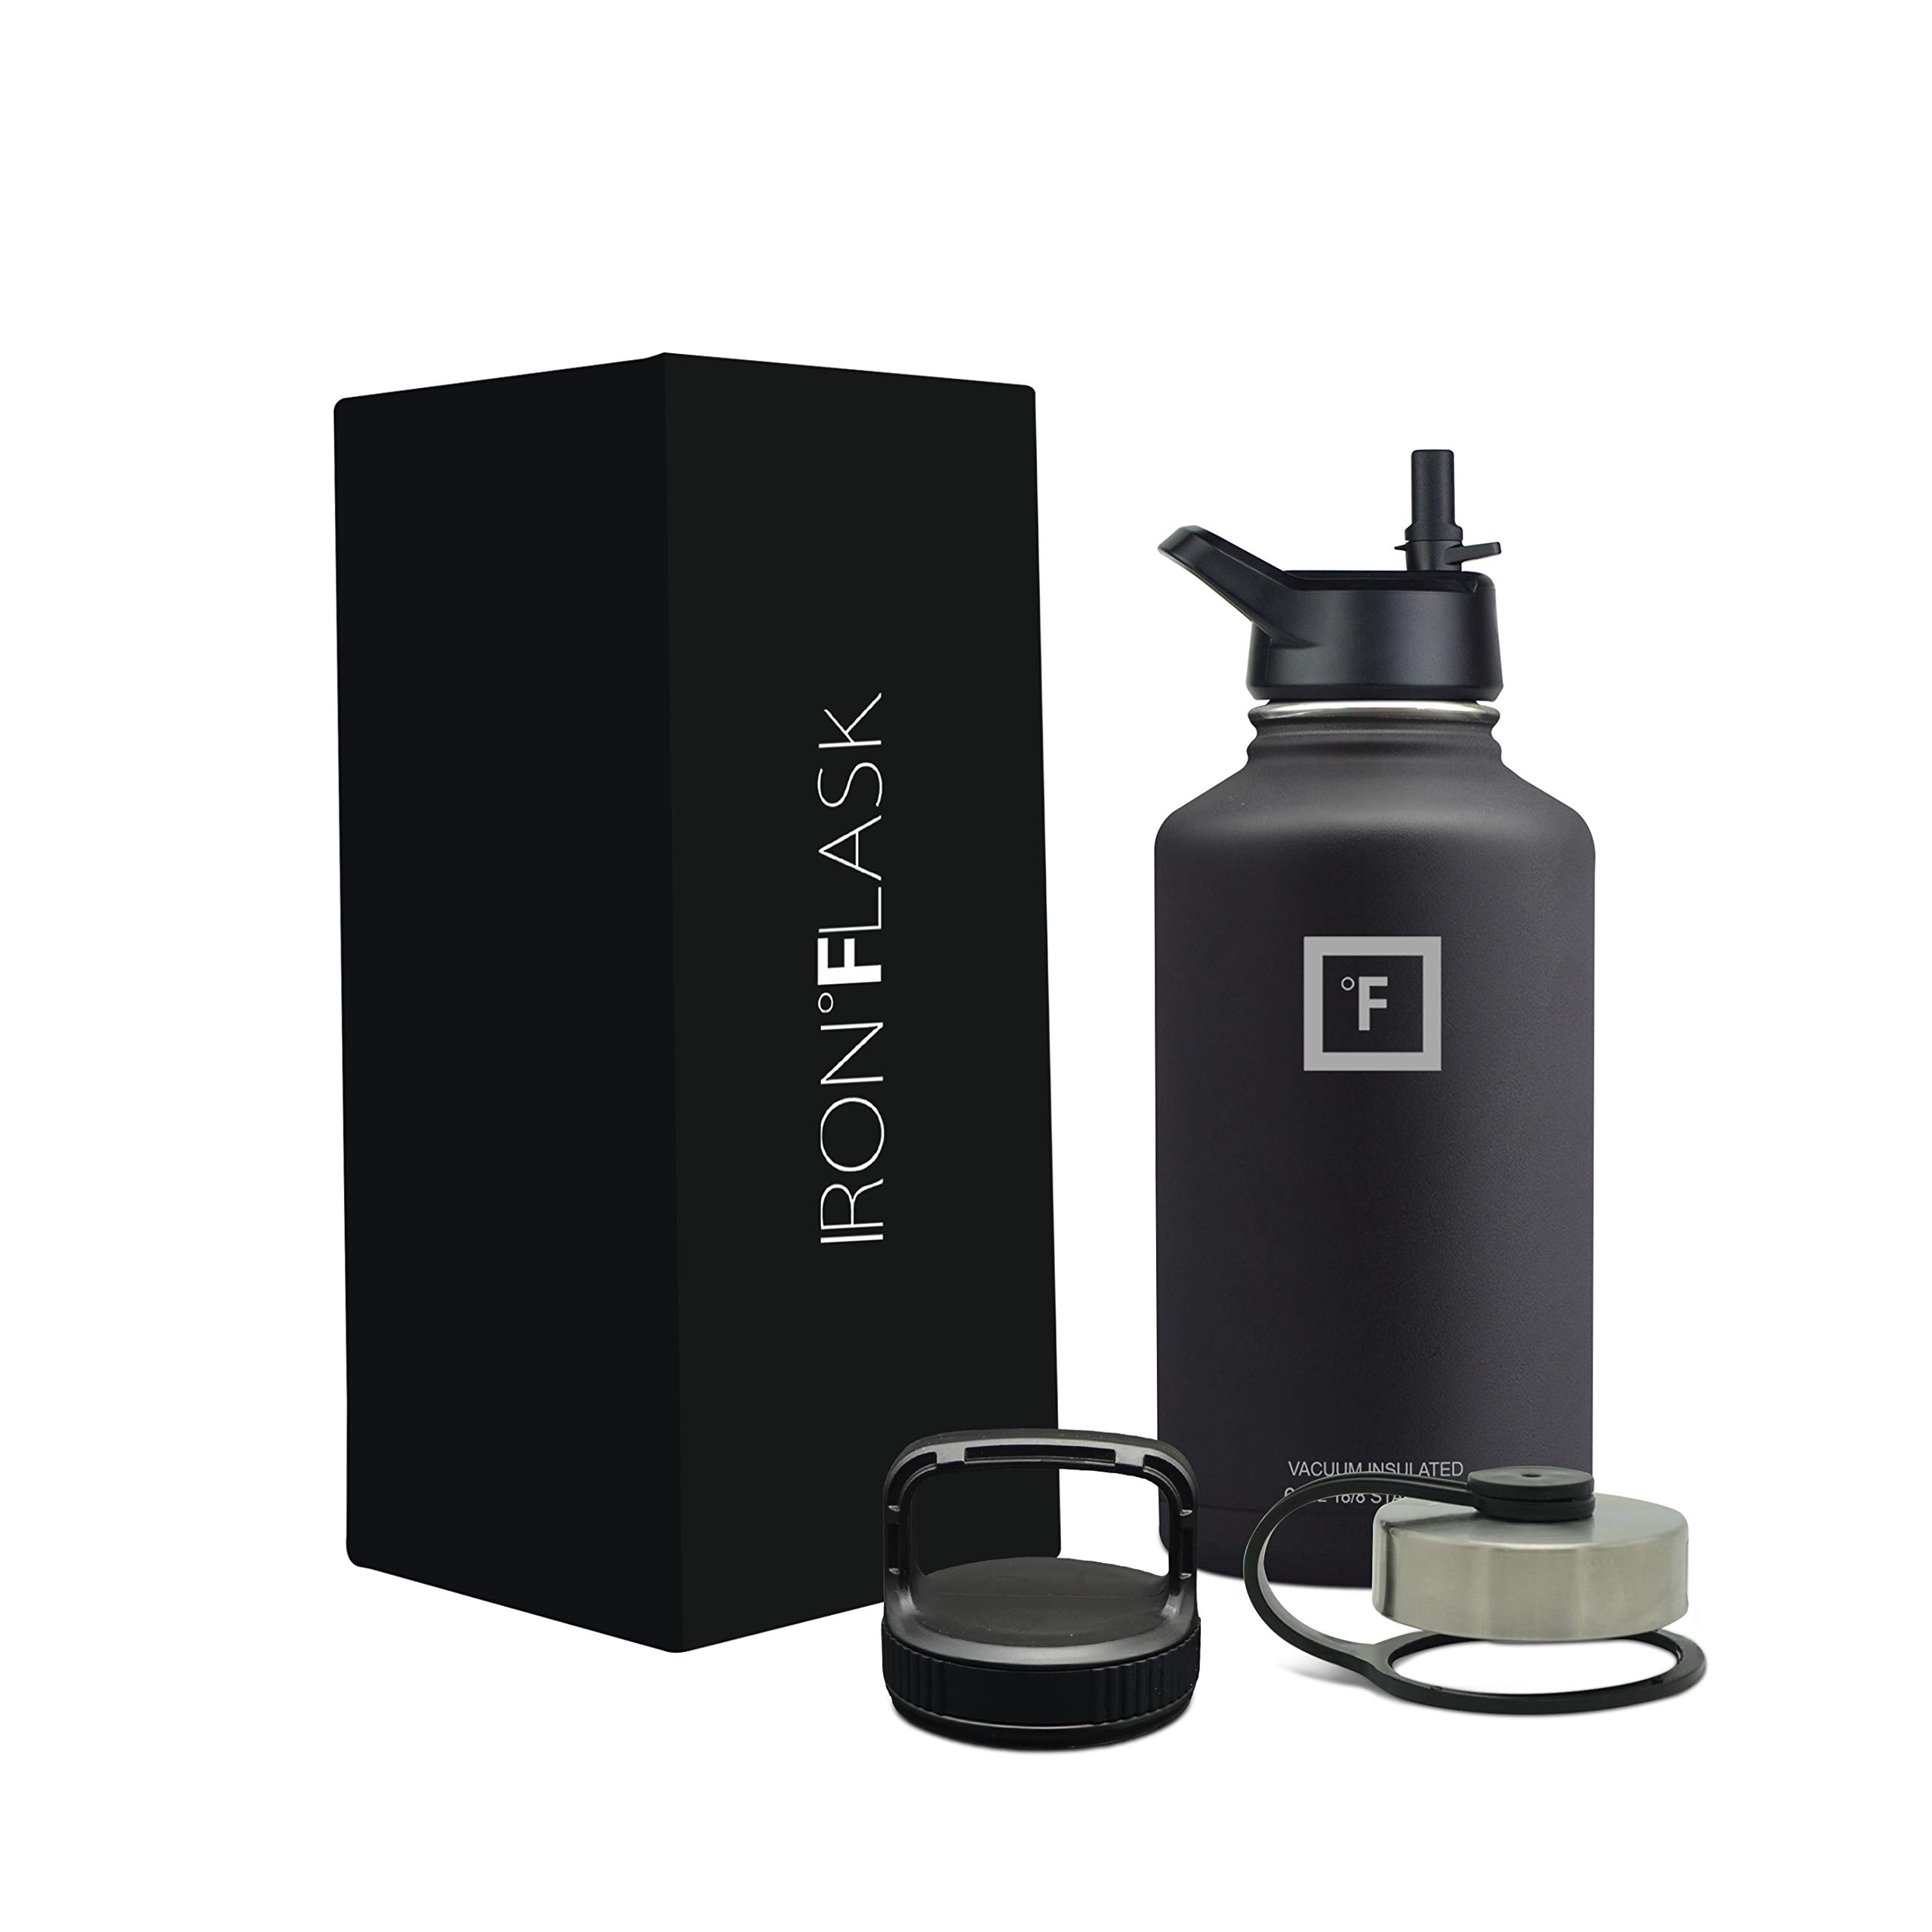 Iron Flask Sports Water Bottle - 64 Oz, 3 Lids, Vacuum Insulated Stainless Steel, Hot & Cold, Wide Mouth, Double Walled, Hydro Metal Canteen, Mid Black by Iron Flask